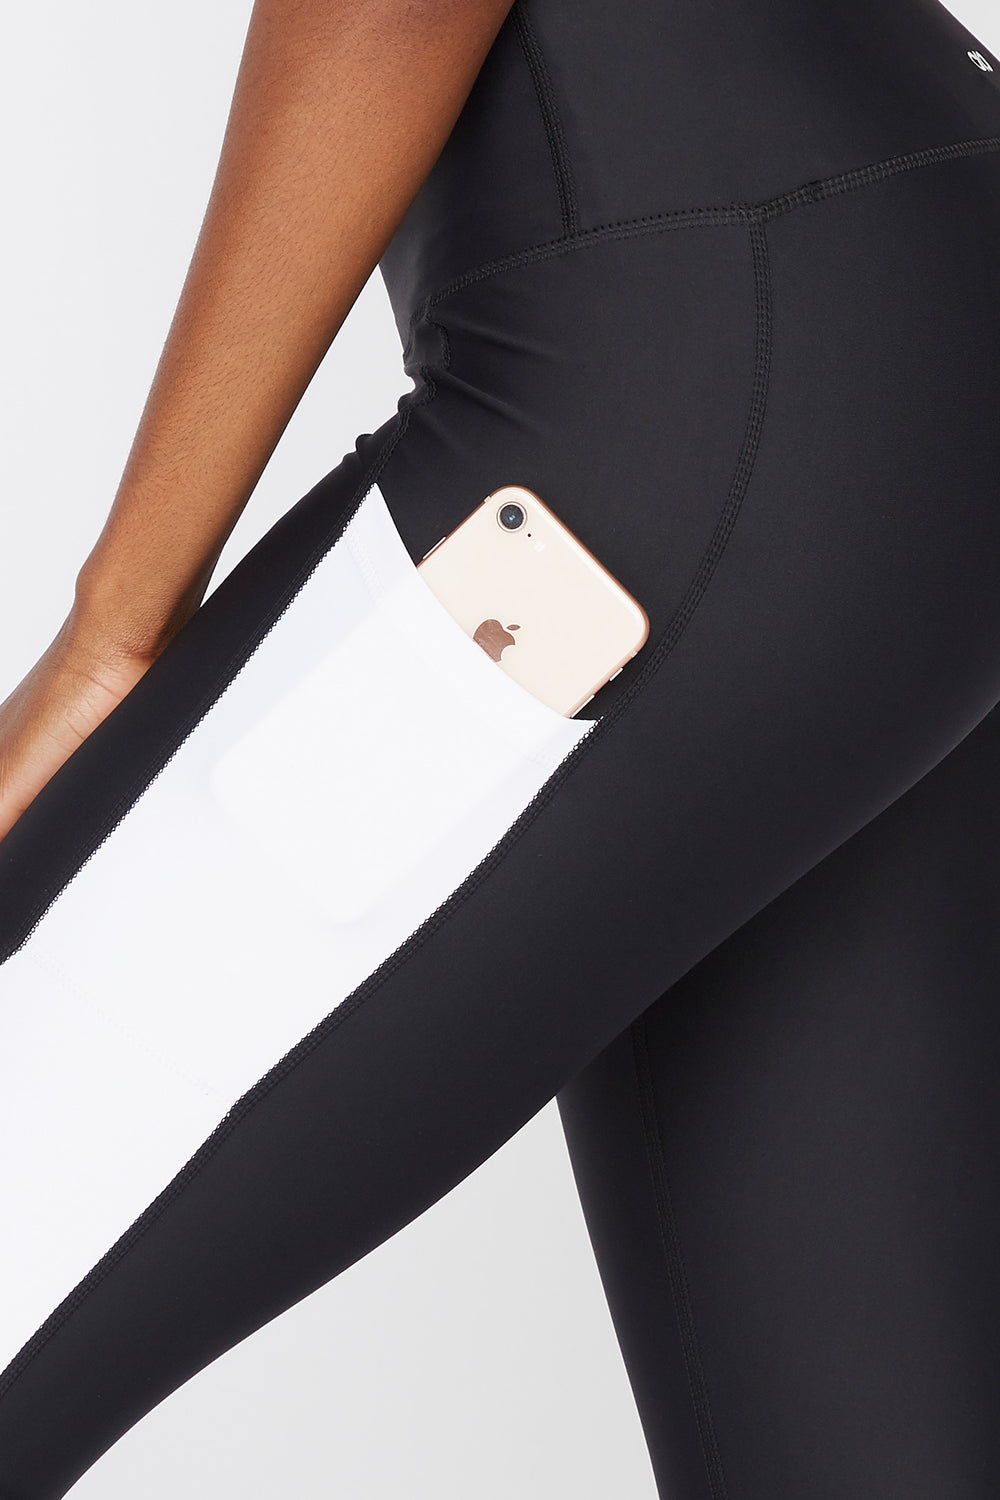 Infinite High-Rise Contrast Pocket Legging Black with White